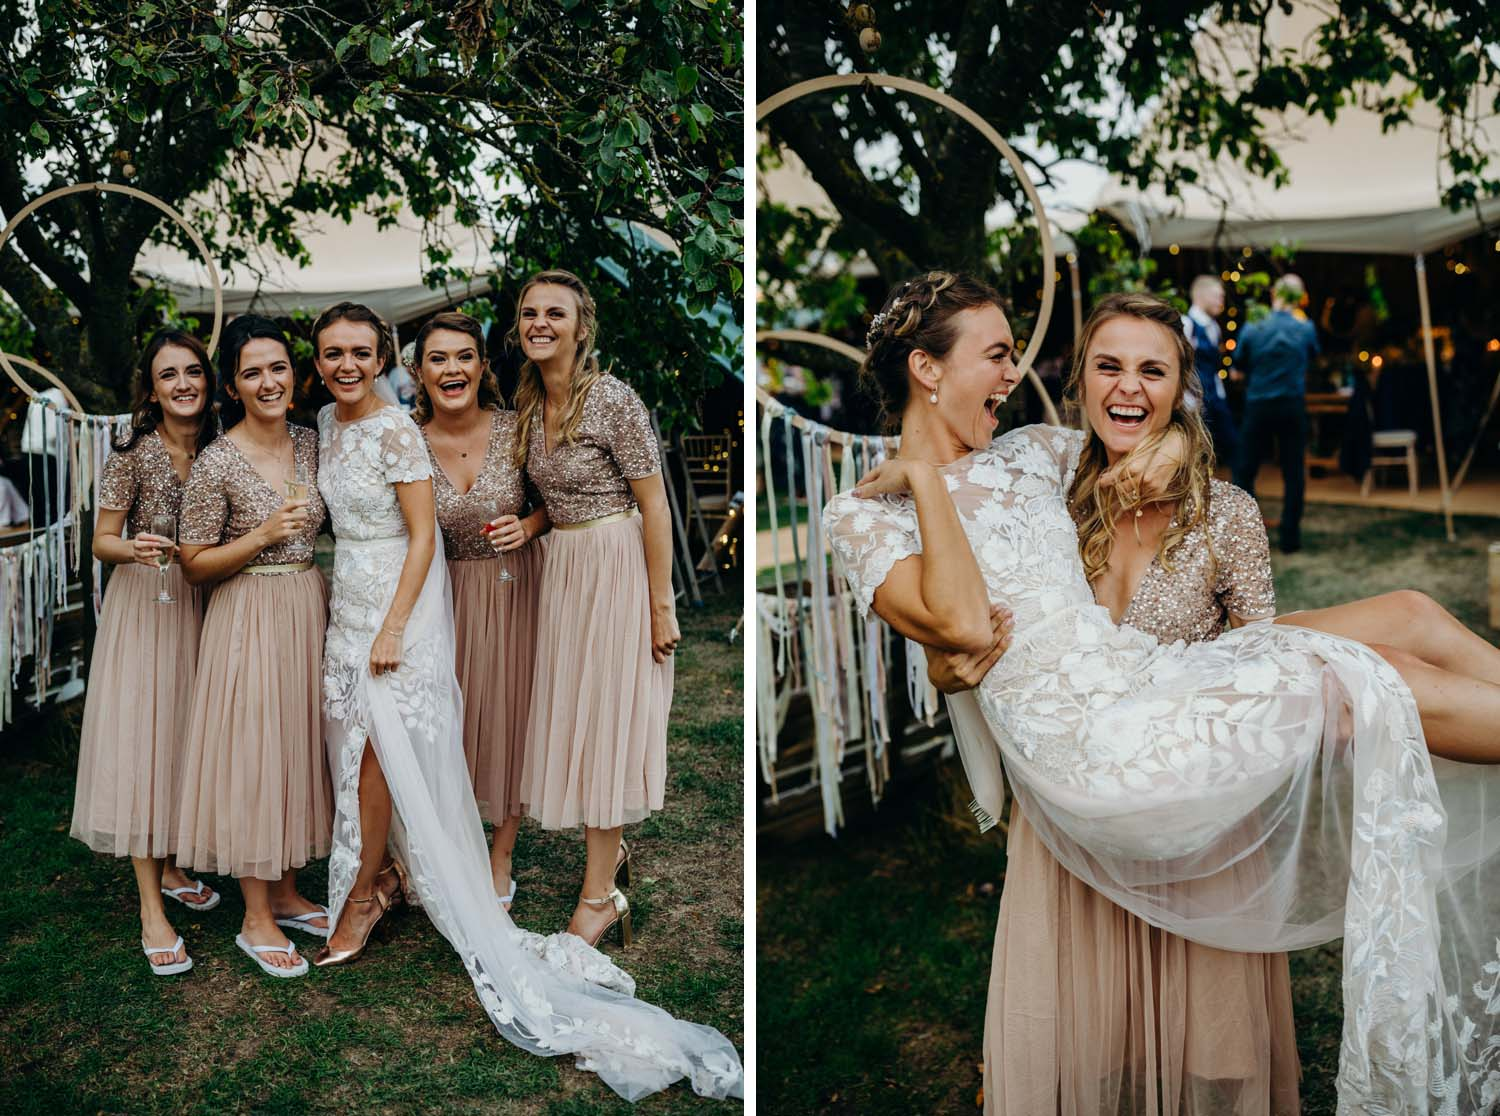 bride bring picked up by bridesmaid